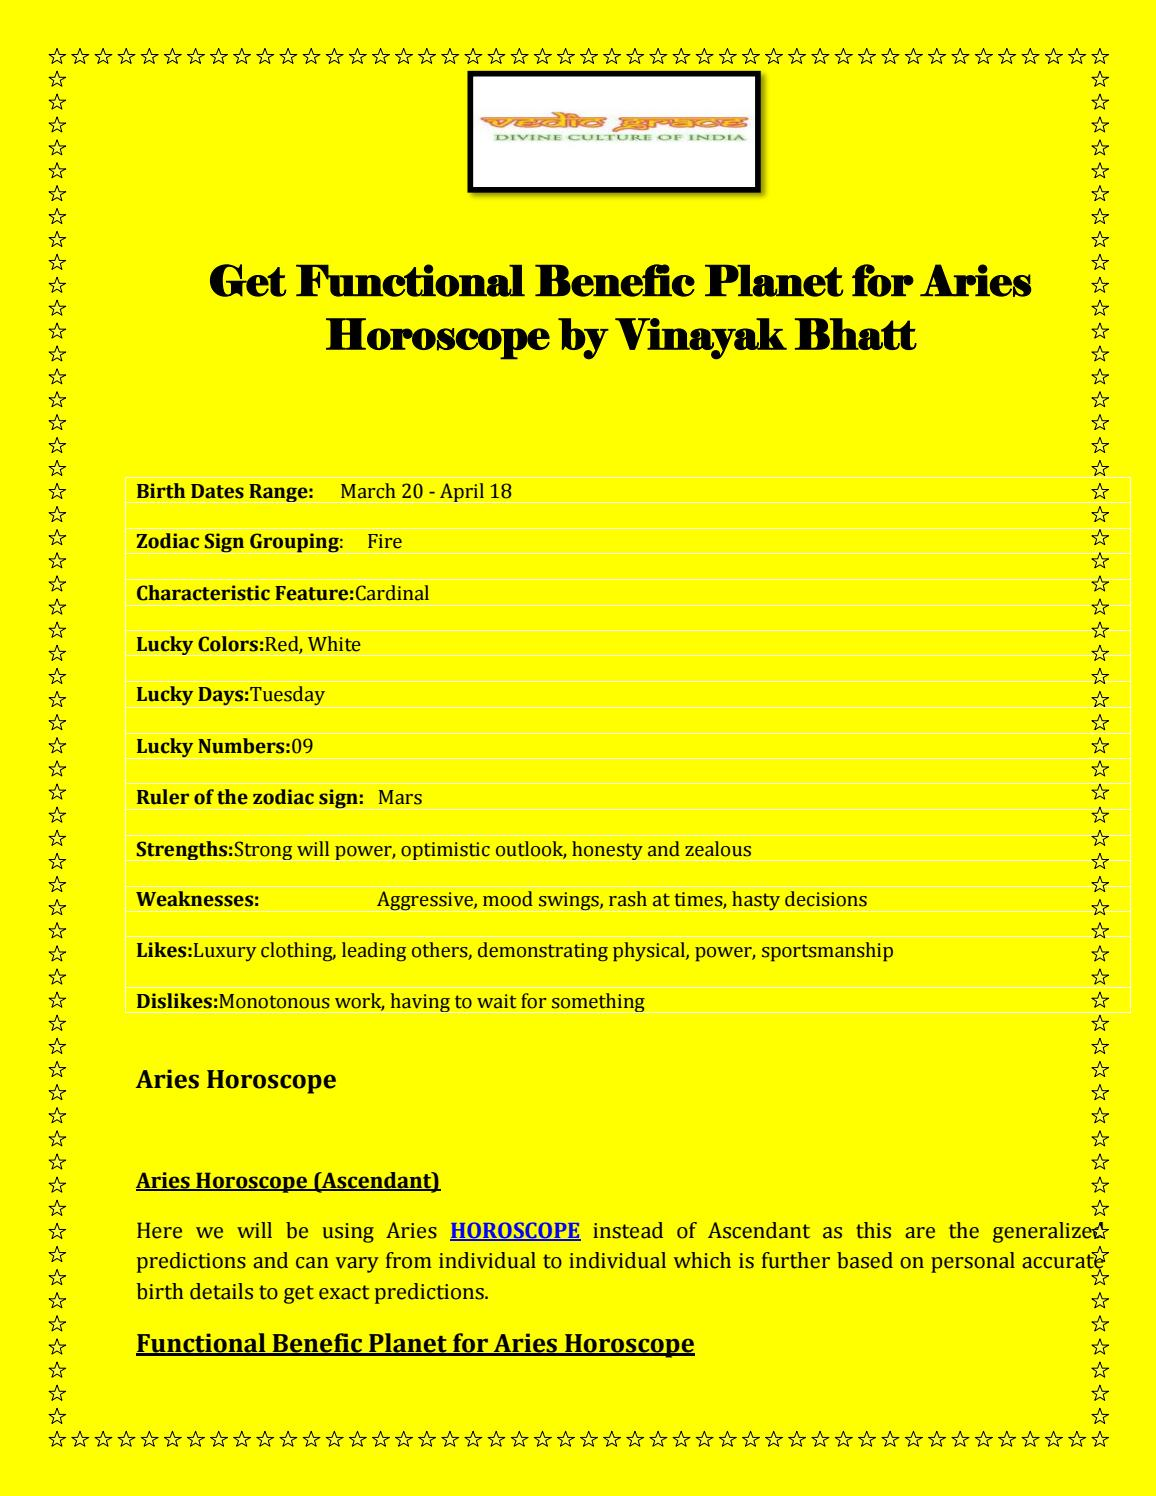 Get Functional Benefic Planet for Aries Horoscope by Vinayak Bhatt